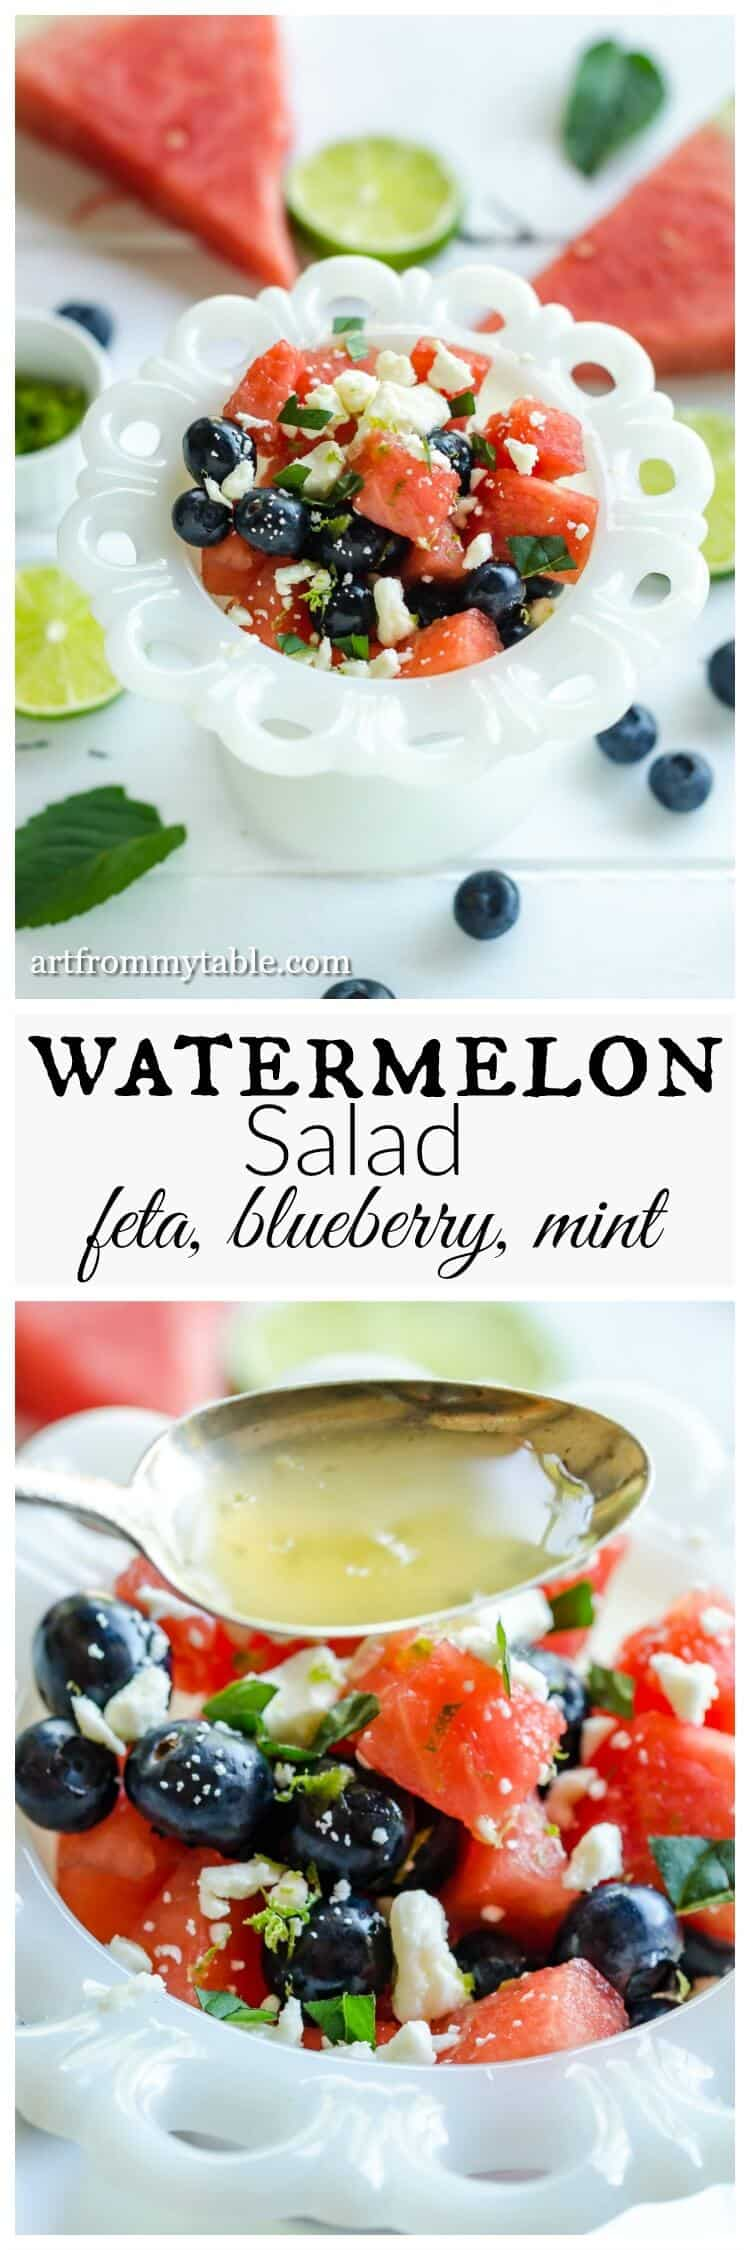 Need something refreshing and healthy for summer? Make this today! Watermelon salad with feta is the perfect alfresco recipe! This will take you 5 minutes to whip up. Bring it to all the bbq's or just enjoy it at home. #watermelonsalad #watermelonwithfeta #4thofJuly #redwhiteandblue #fourthofjulyrecipe #Summerrecipes via @artfrommytable